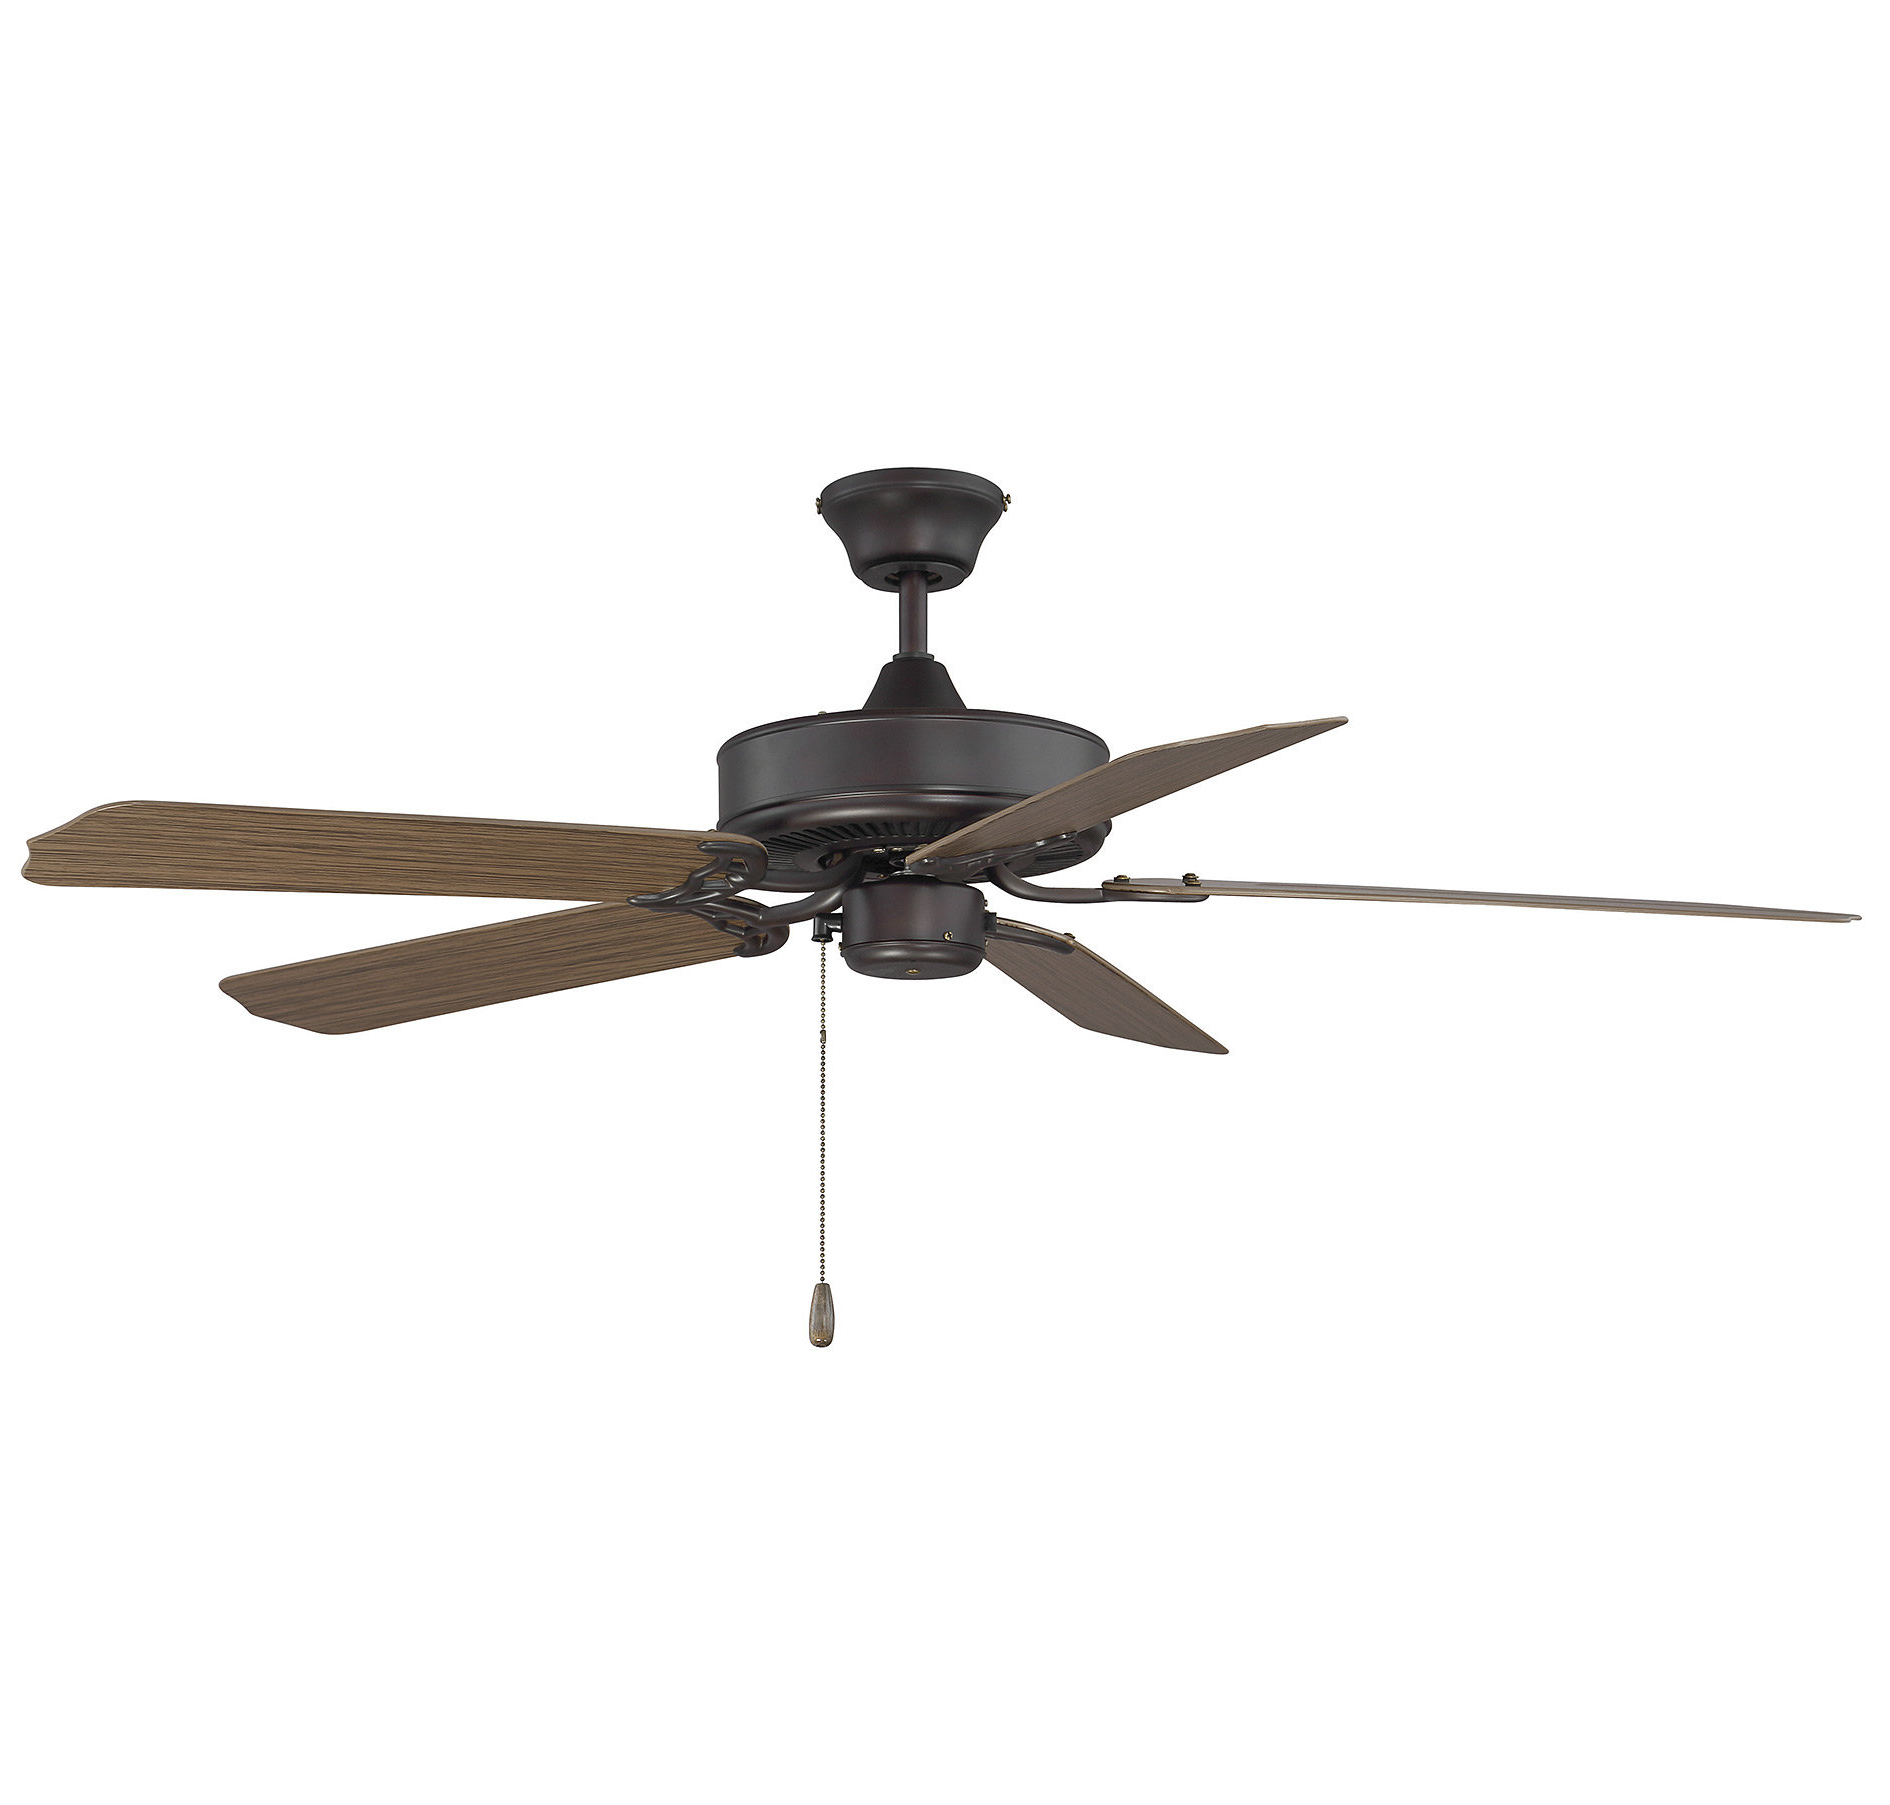 "Blomquist 5 Blade Outdoor Ceiling Fans With Well Known Details About Charlton Home 52"" Blomquist 5 Blade Outdoor Ceiling Fan (View 5 of 20)"